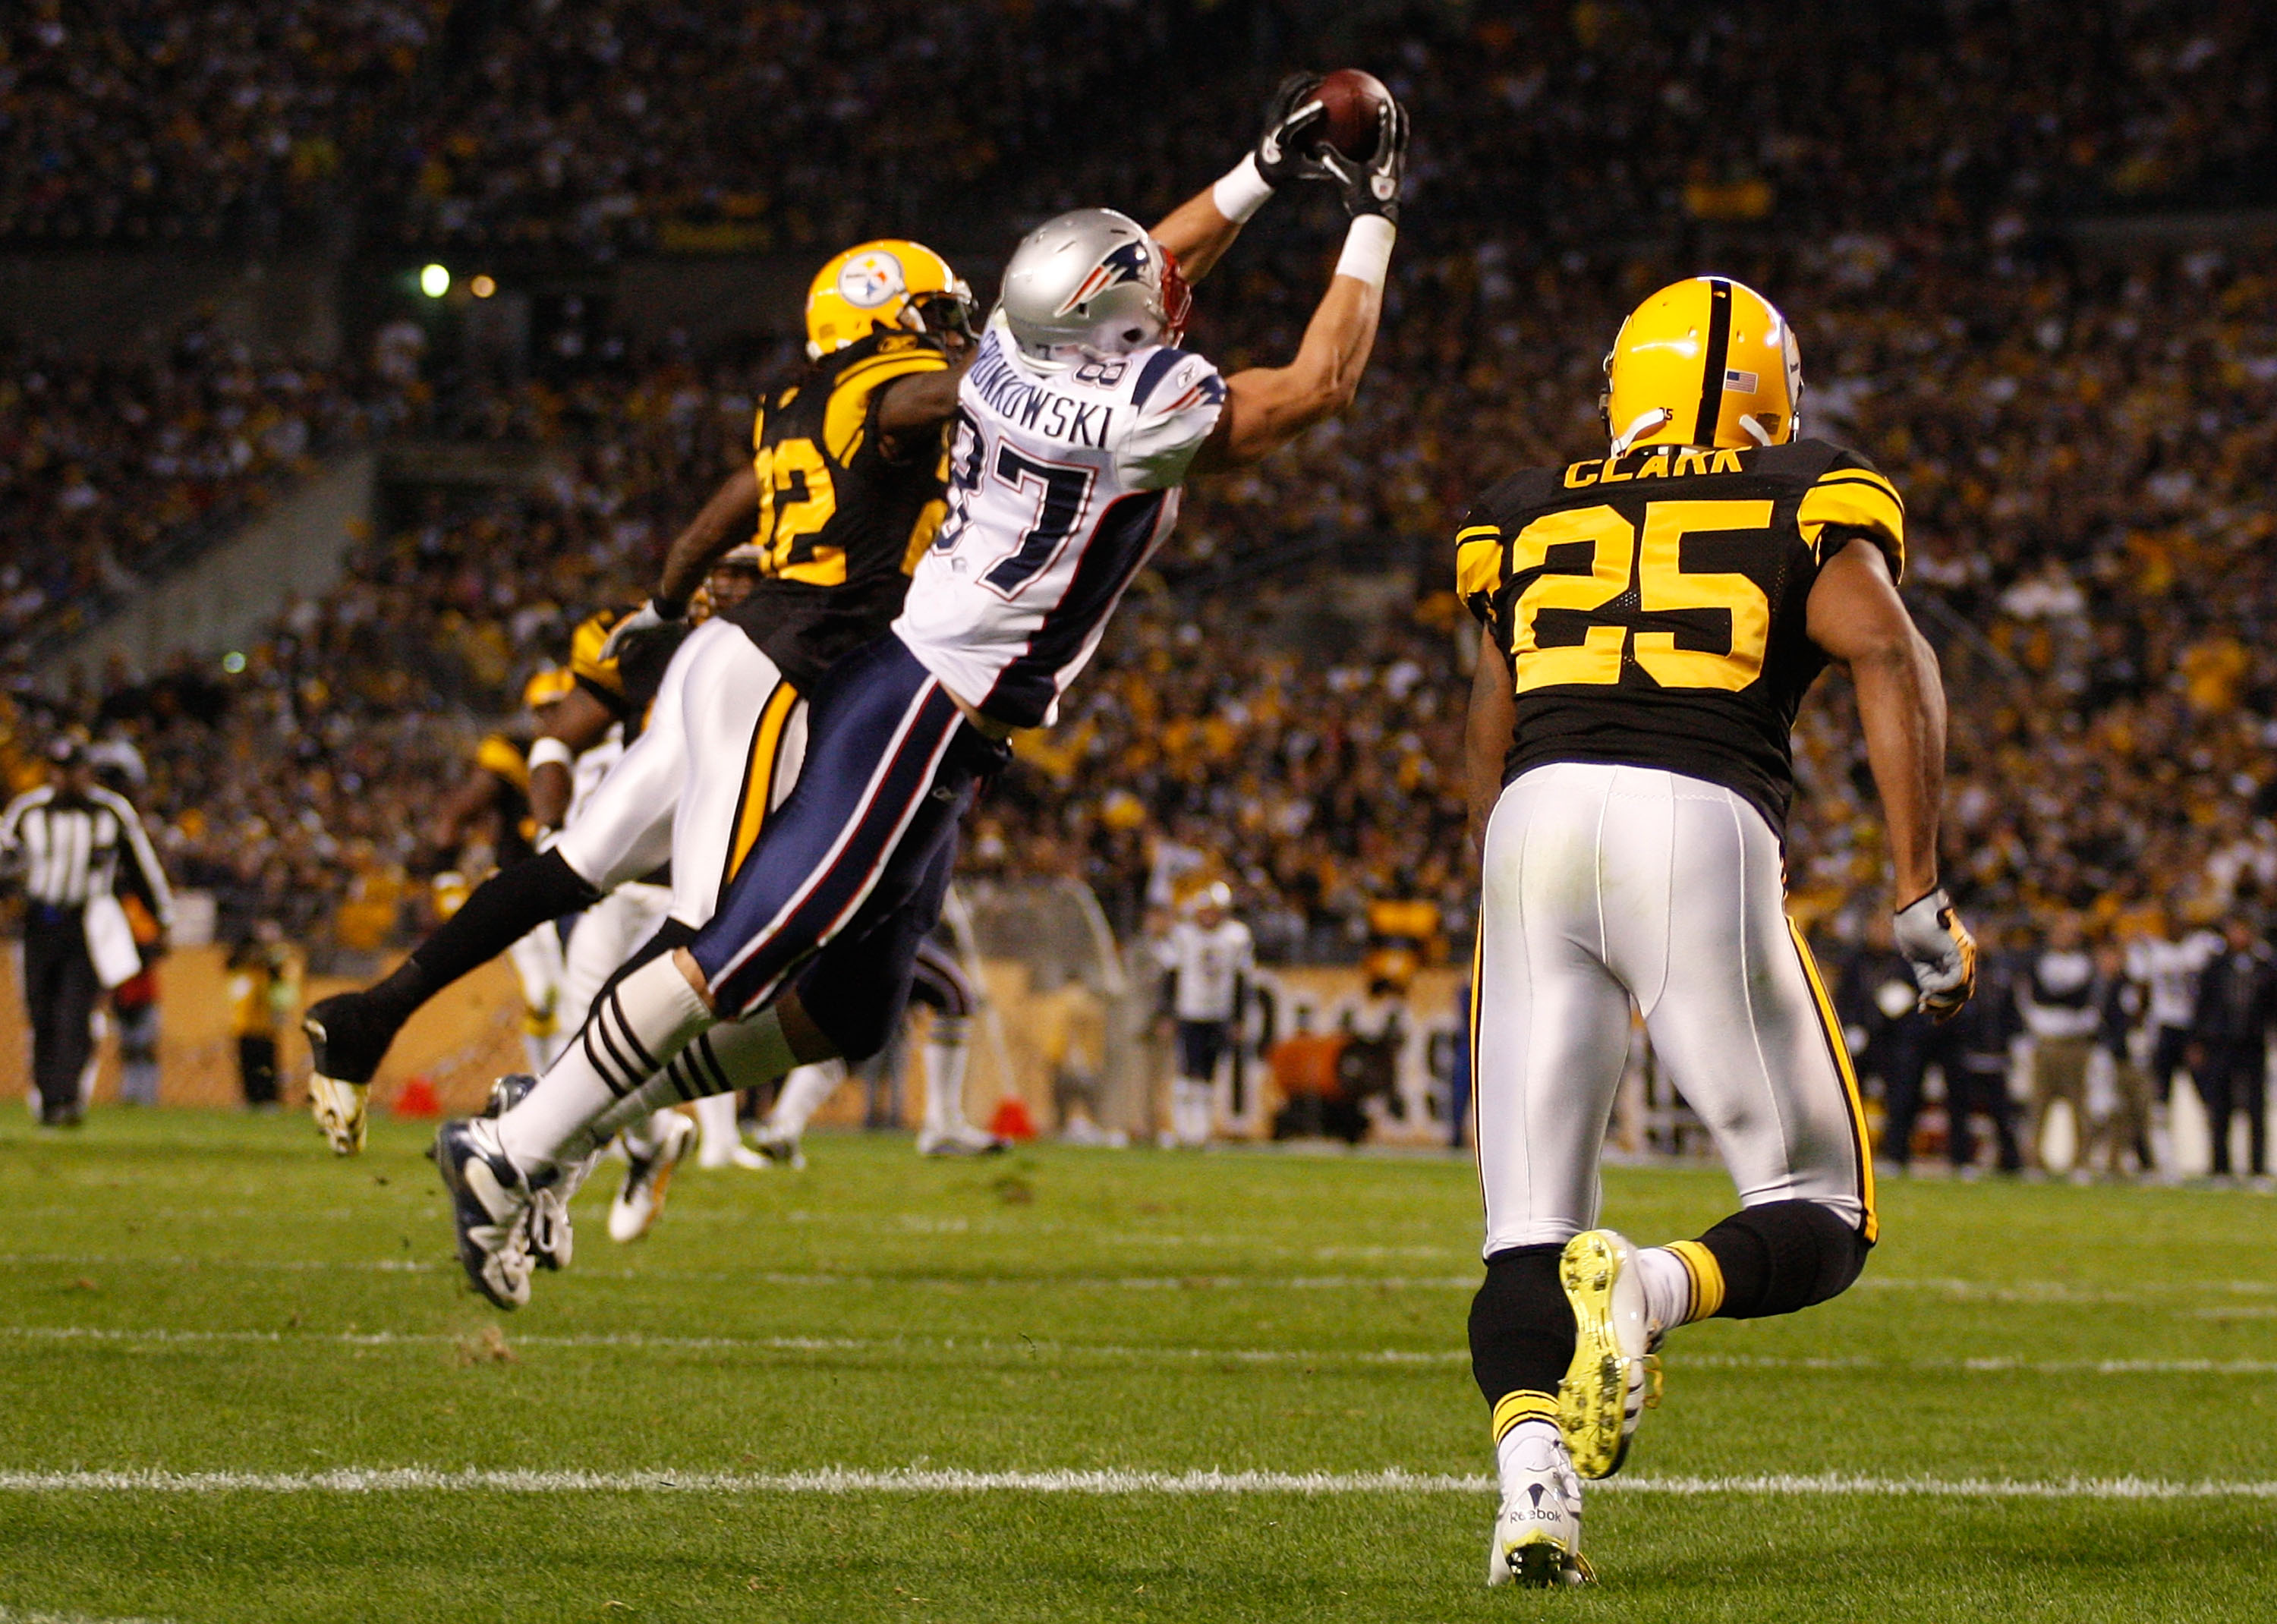 PITTSBURGH - NOVEMBER 14:  Rob Gronkowski #87 of the New England Patriots catches a touchdown pass during the game against the Pittsburgh Steelers on November 14, 2010 at Heinz Field in Pittsburgh, Pennsylvania.  (Photo by Jared Wickerham/Getty Images)